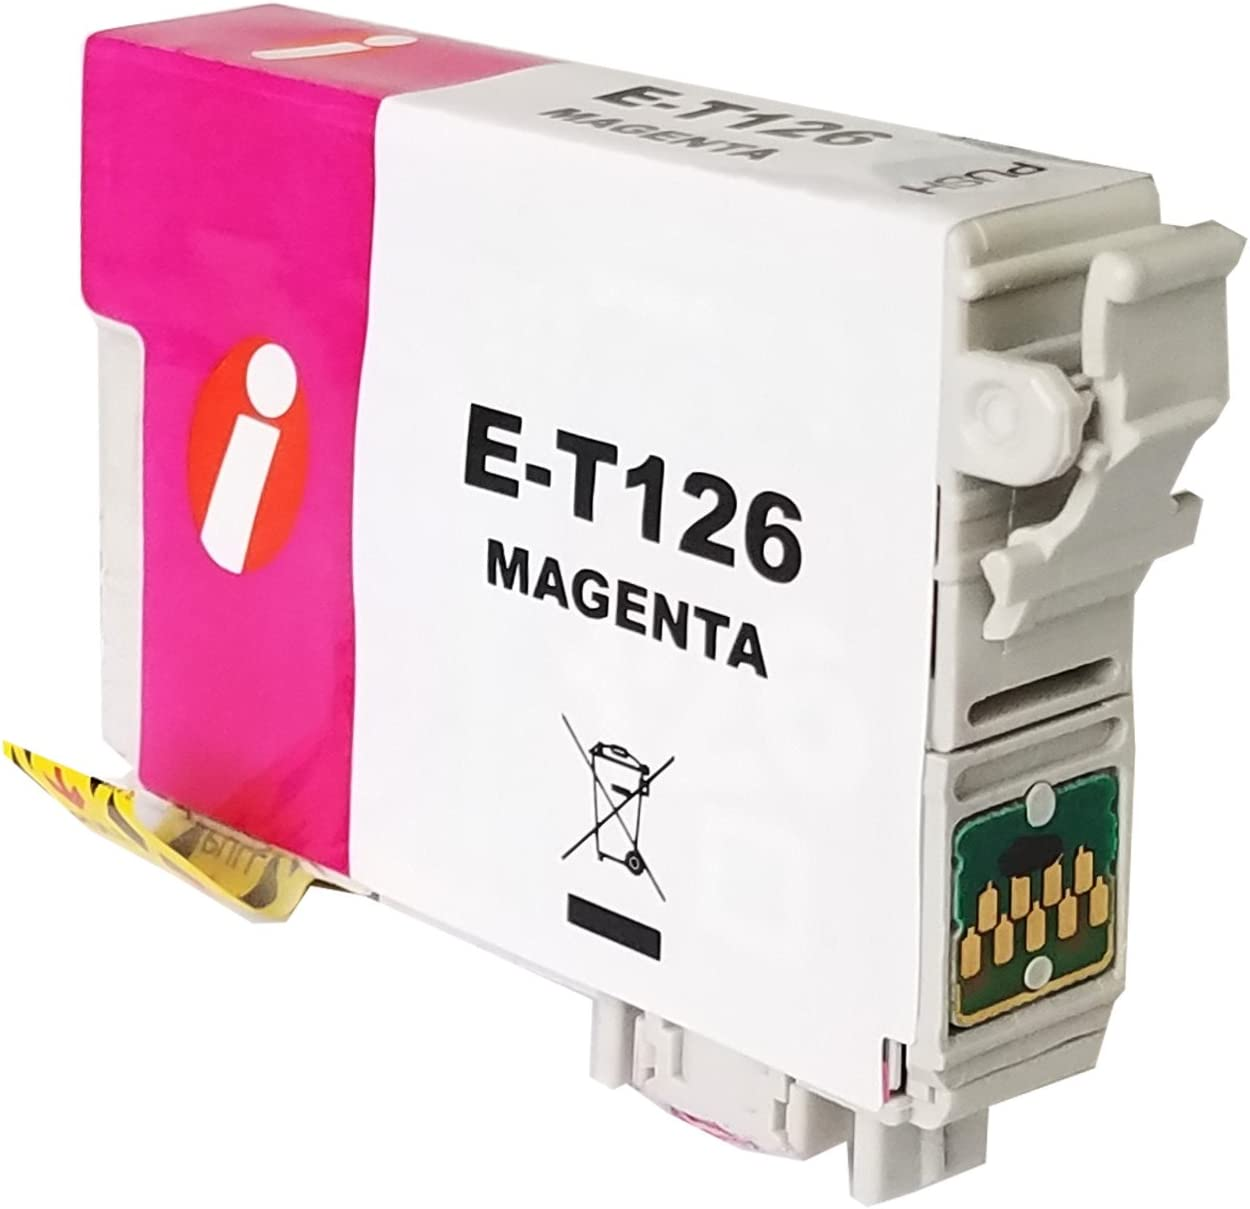 INK4WORK 3 Pack Remanufactured Magenta Ink Cartridge Replacement for Epson 126 T126 for Workforce 435 520 545 635 645 WF-3520 WF-3530 WF-3540 WF-7010 WF-7510 WF-7520 Magenta, 3-Pack